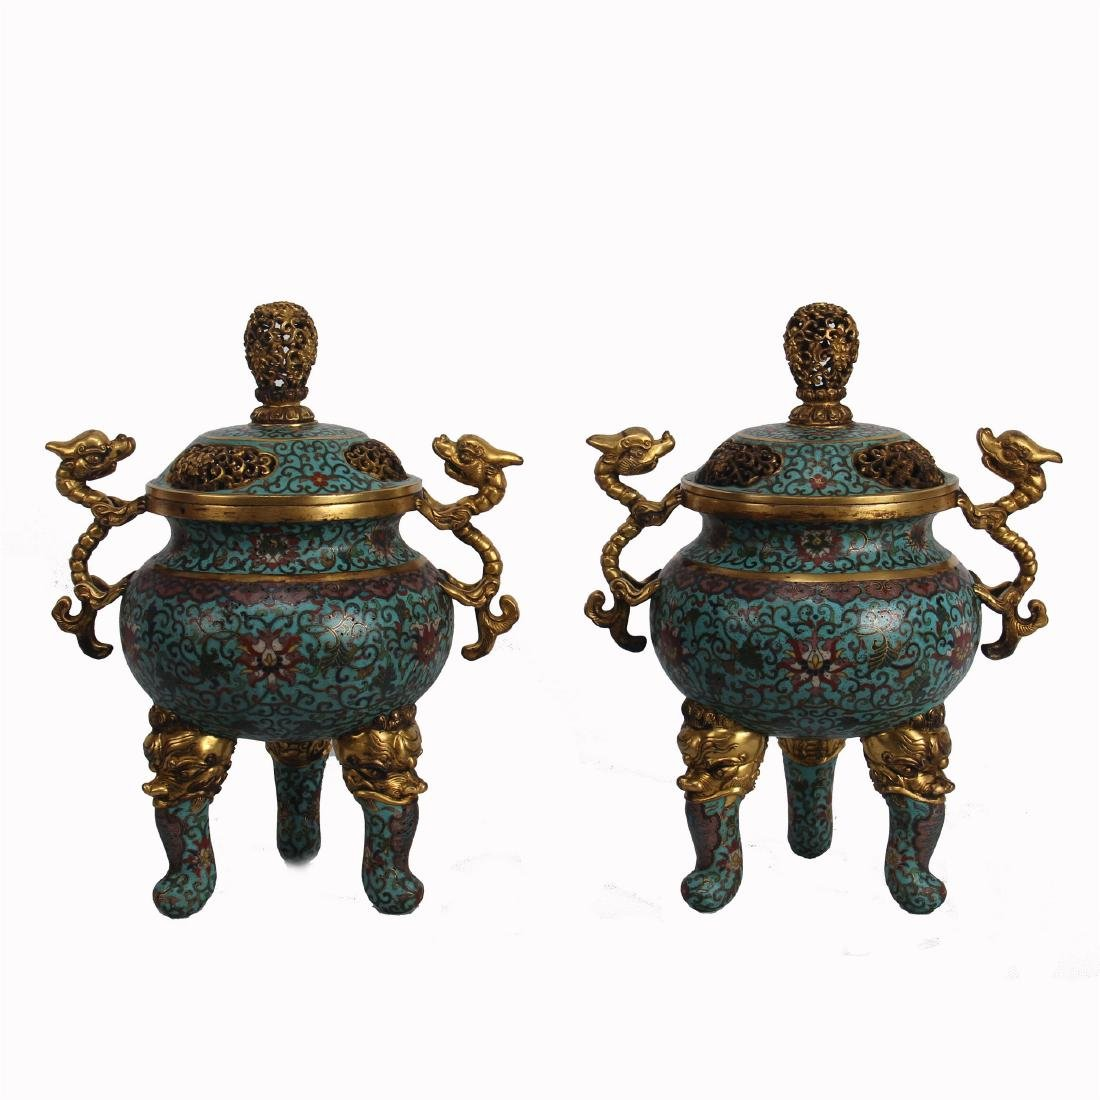 PAIR OF CHINESE CLOISONNE DRAGON HANDLE CENSER